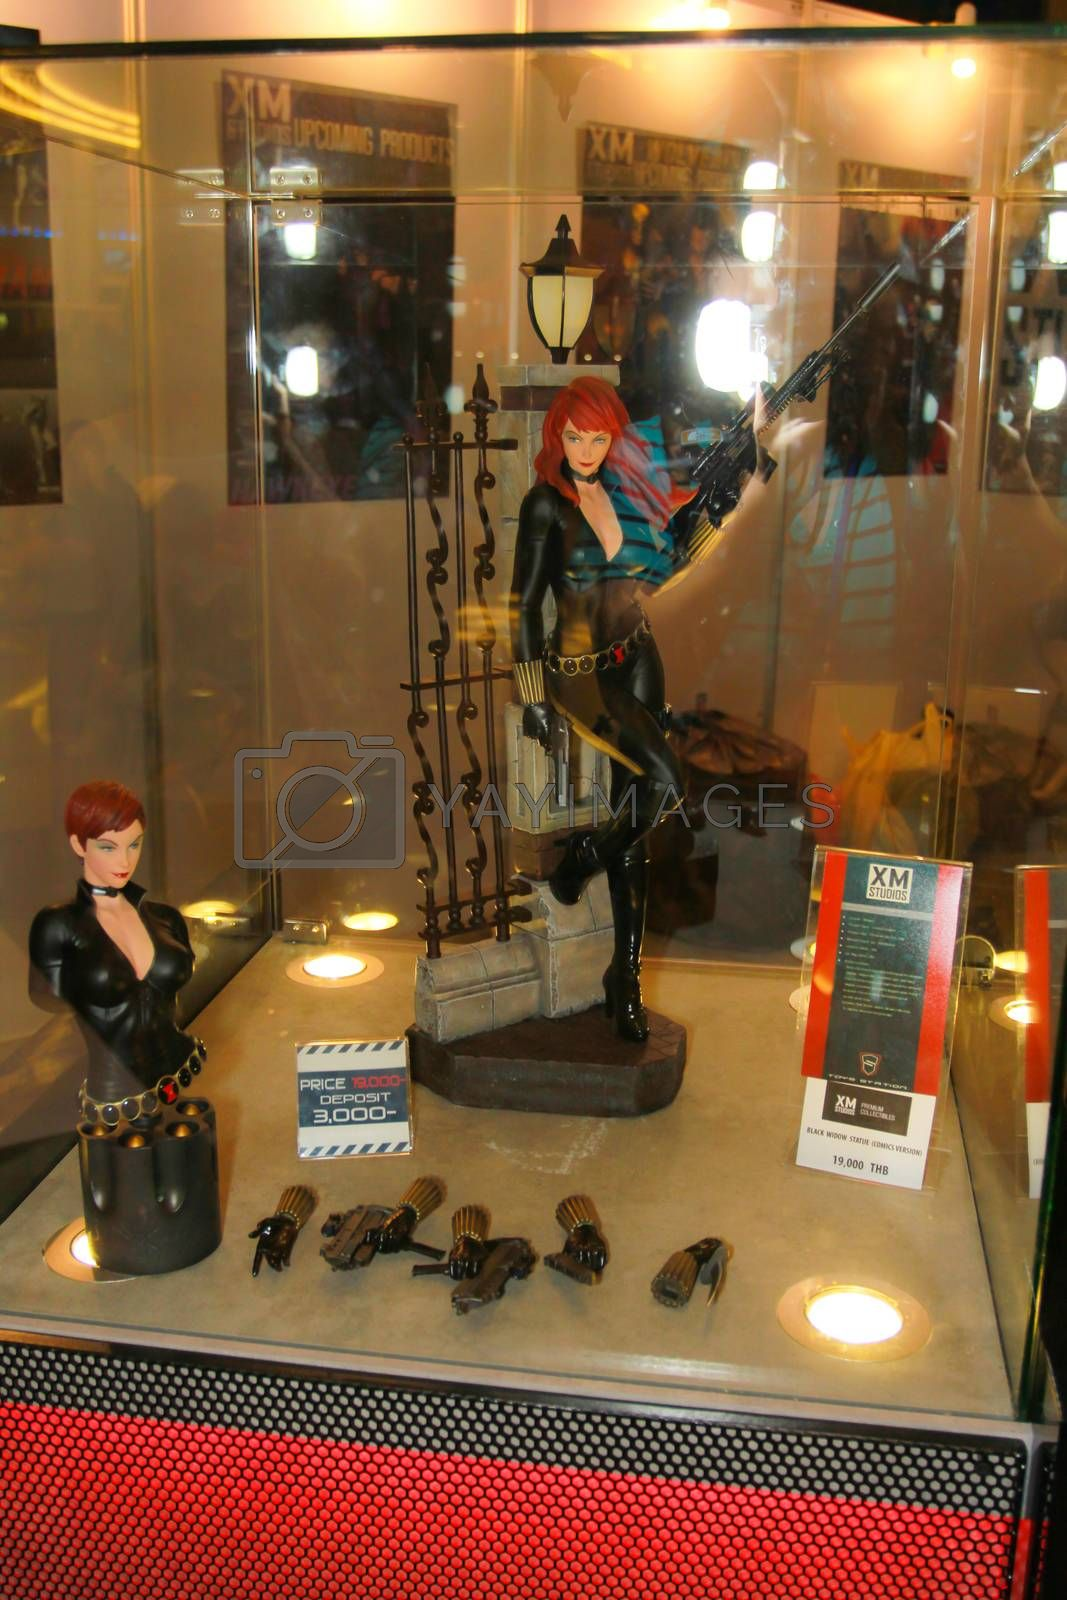 Royalty free image of A model of the character Black Widow from the movies and comics  by redthirteen